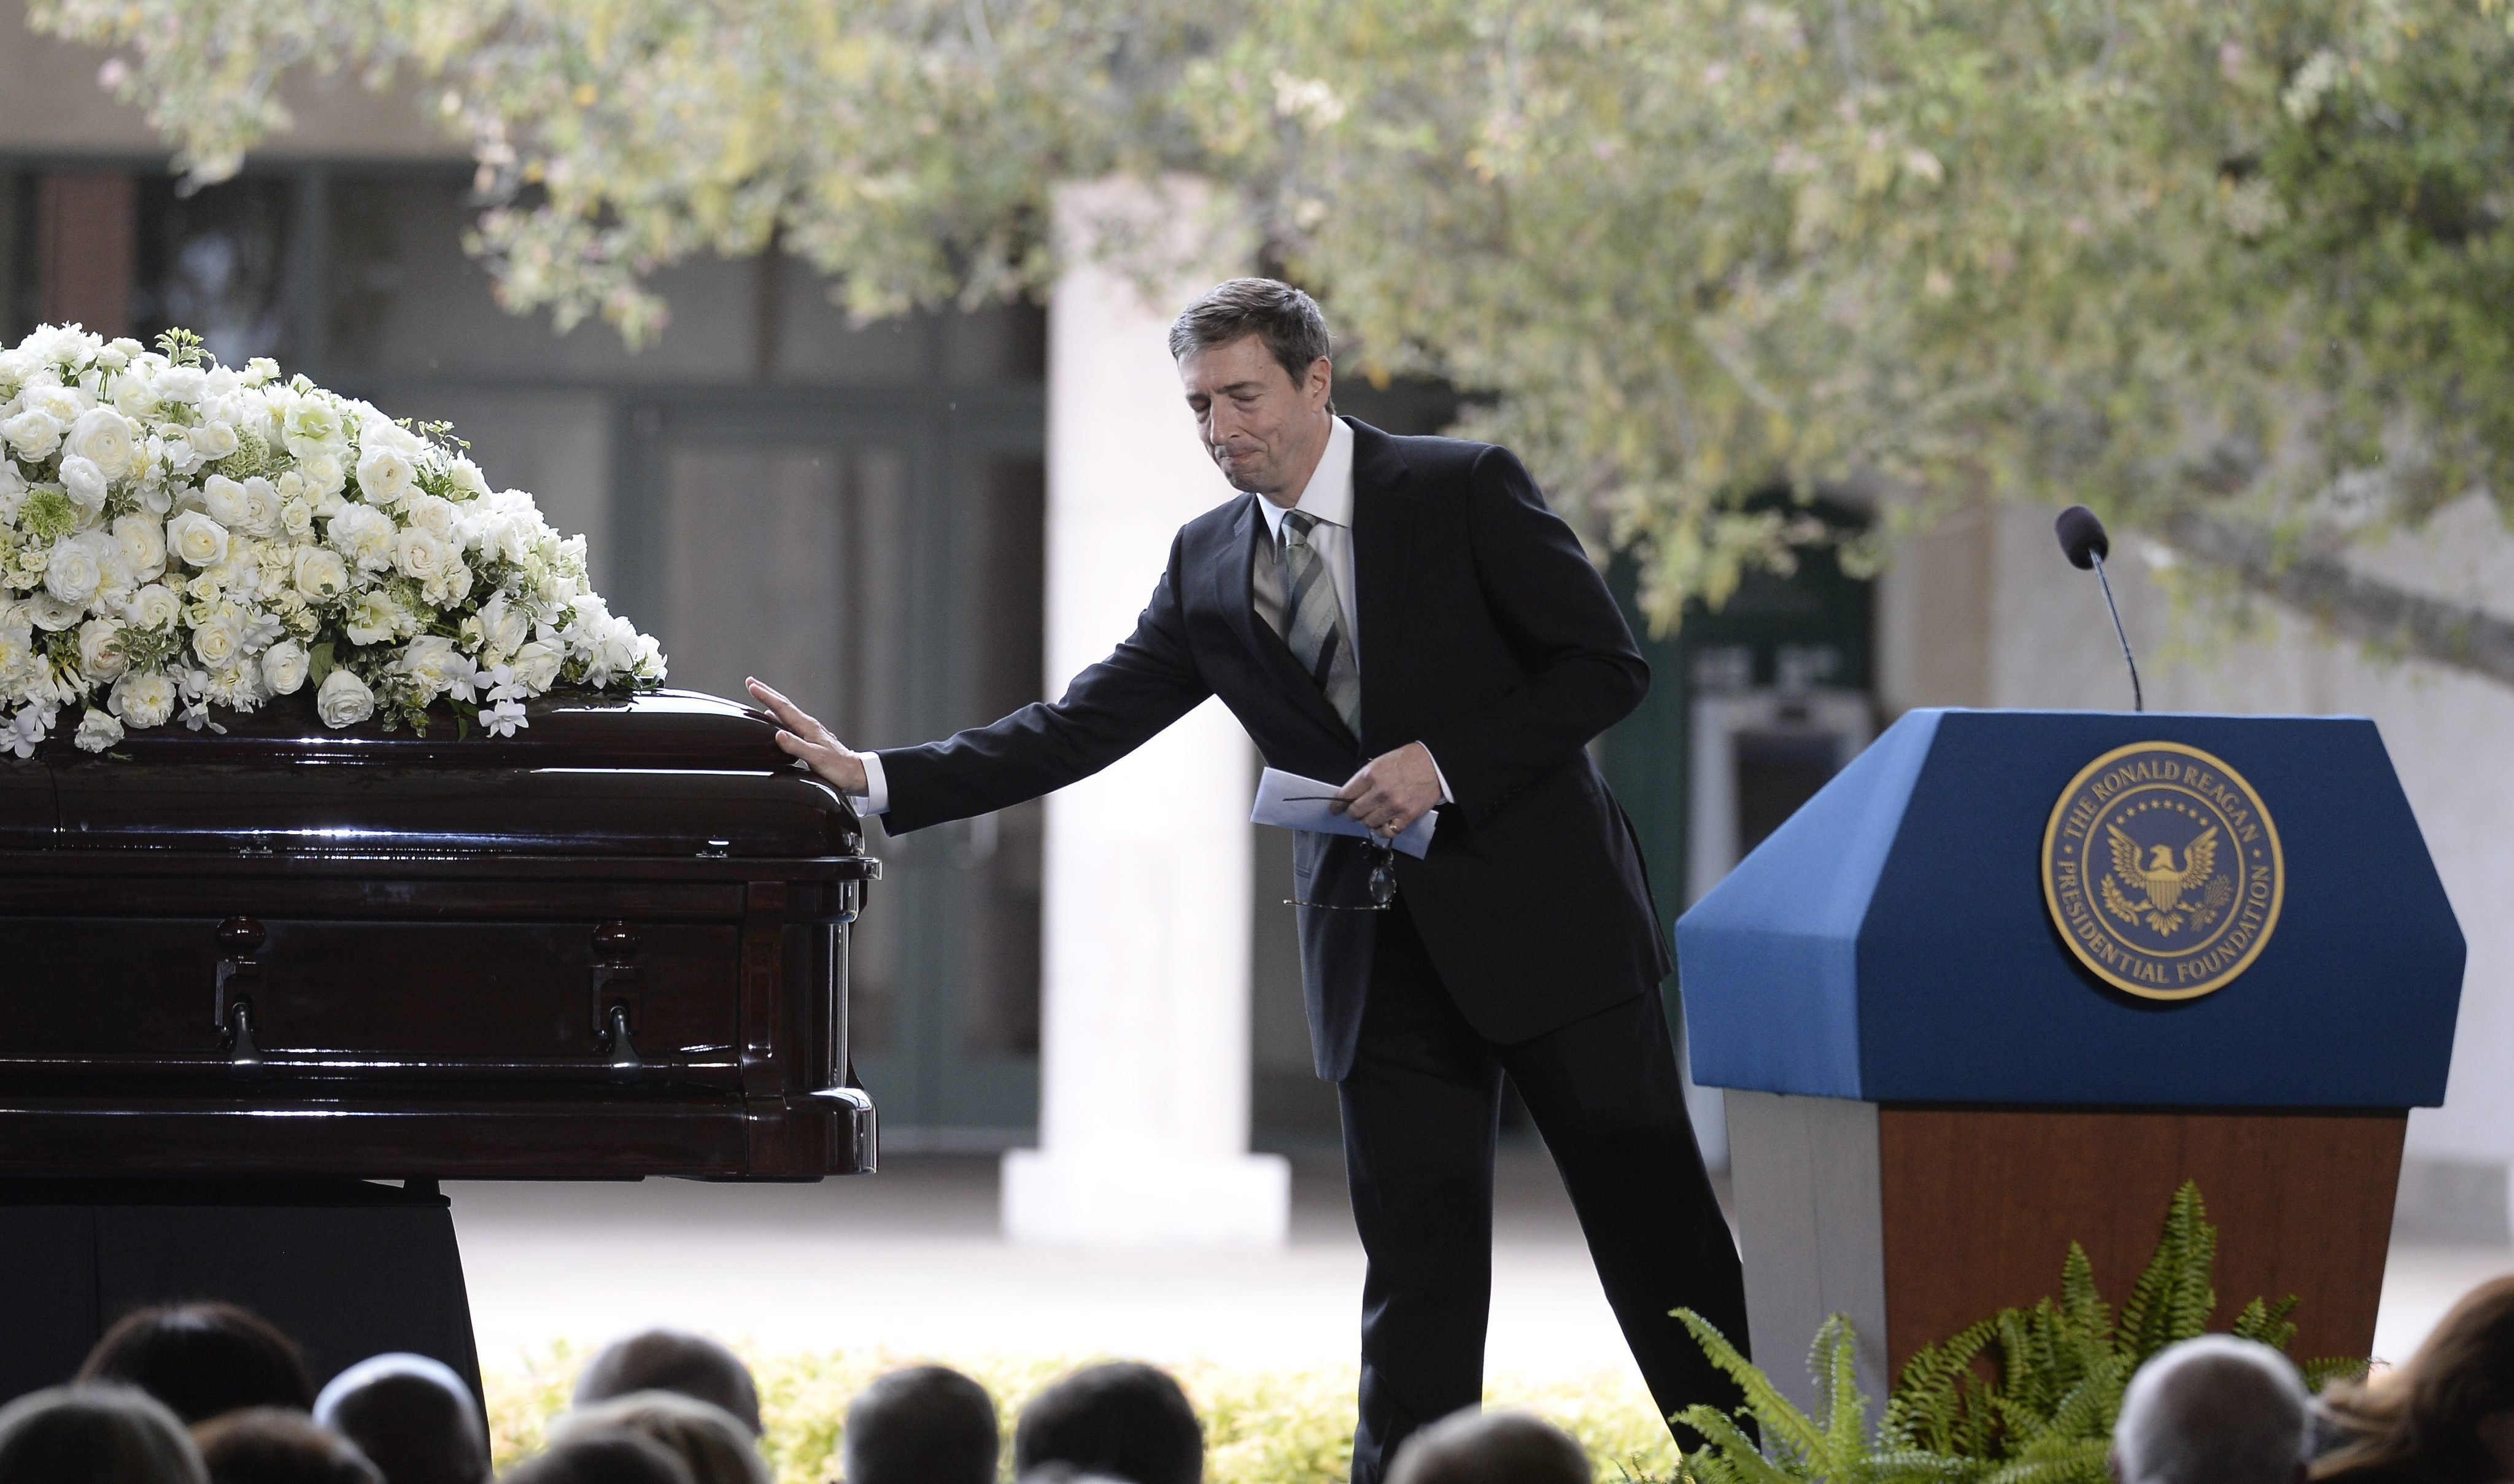 Ronald Reagan Jr touches the casket of his mother during the service, March 11, 2016.